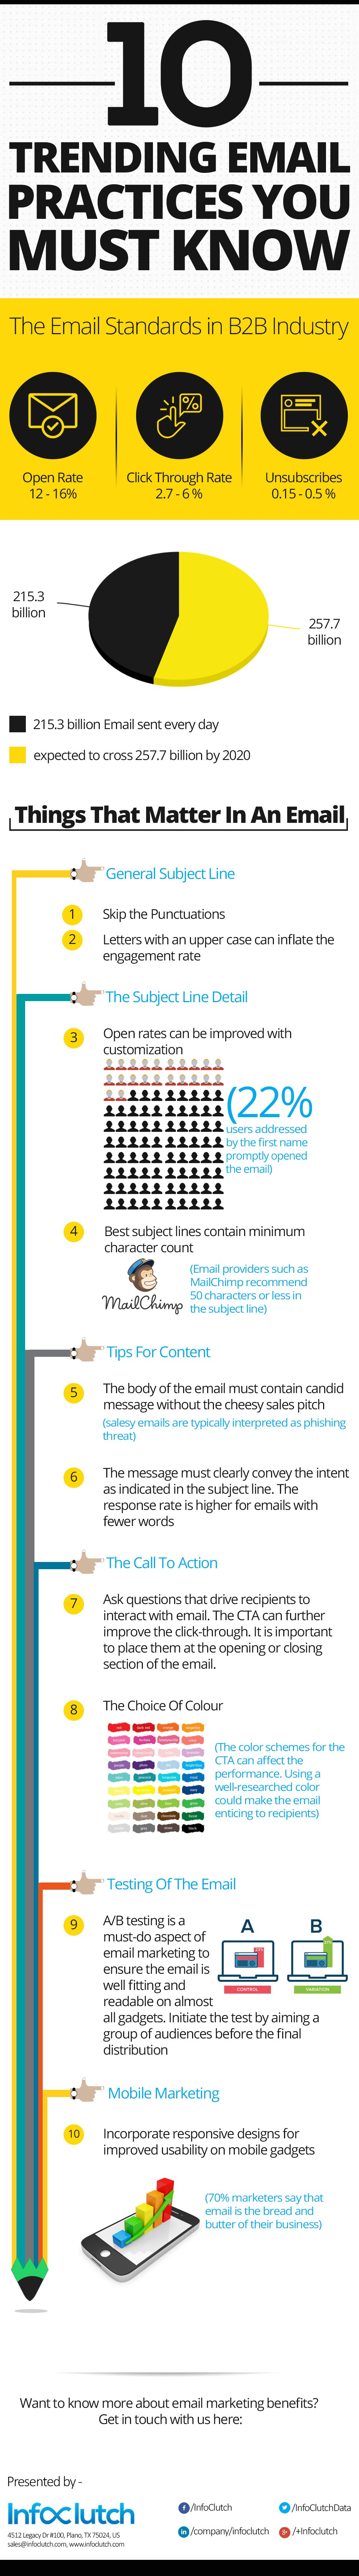 10-trending-email-practices-you-must-know